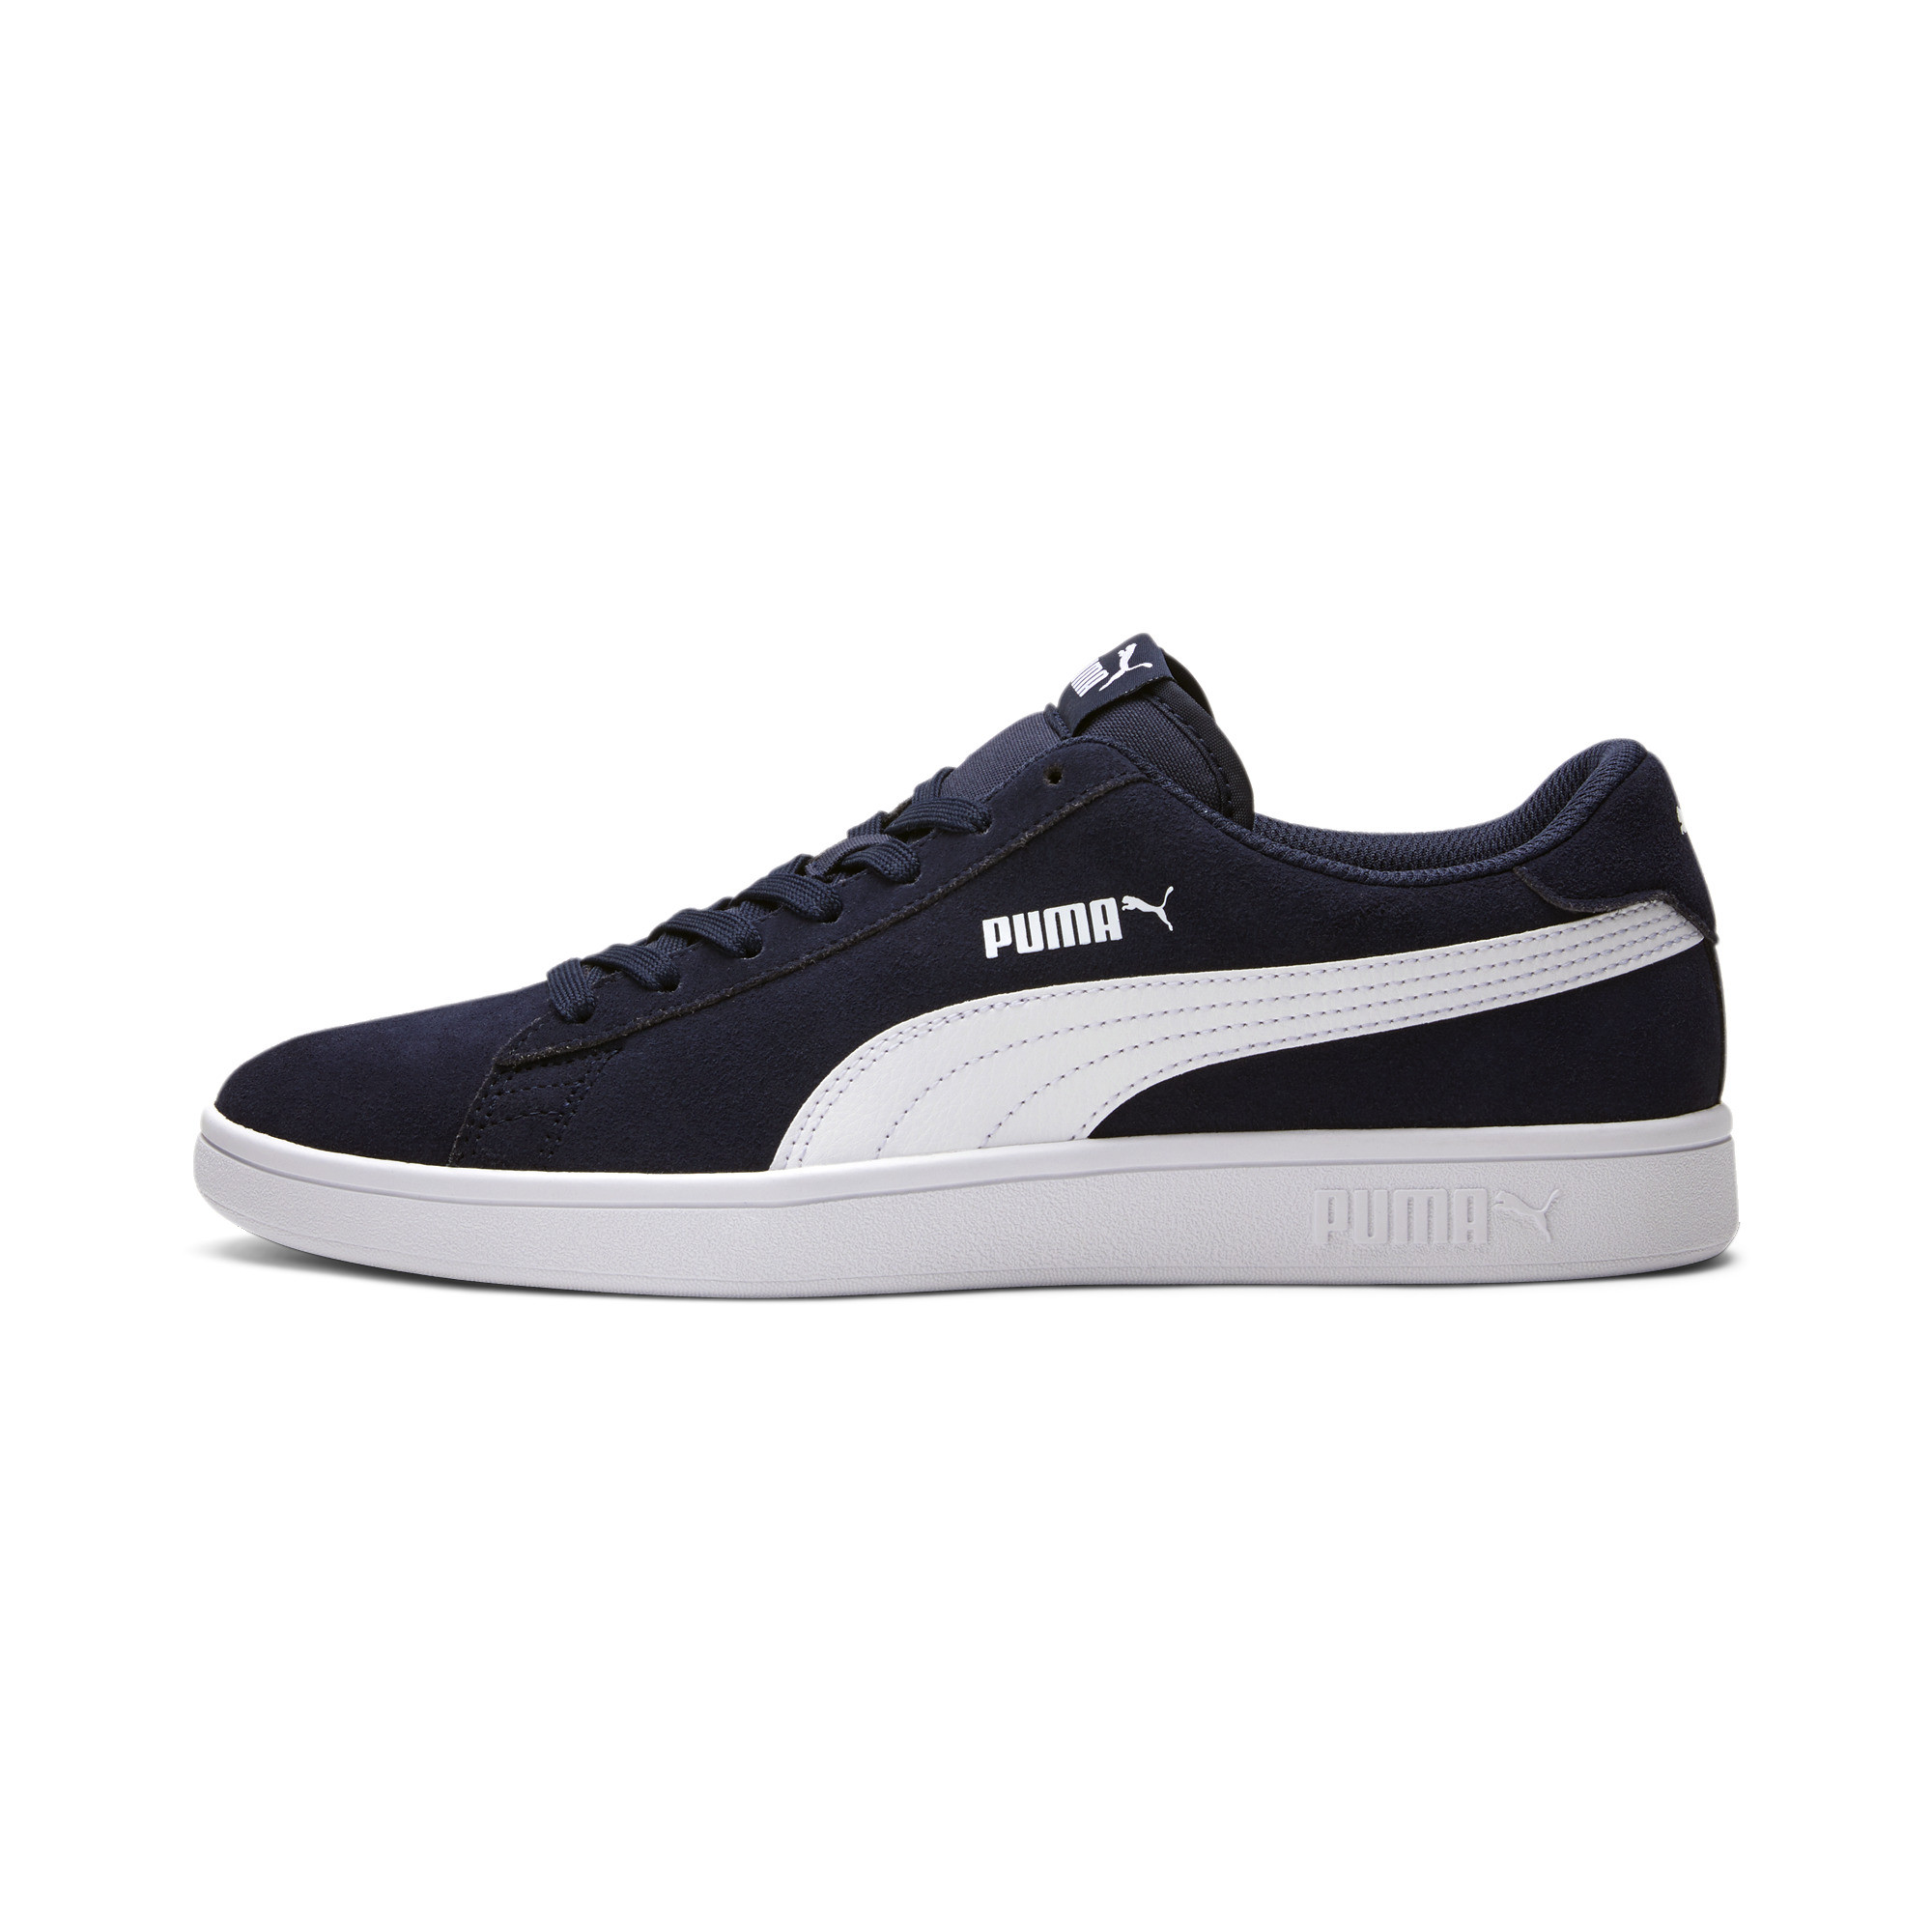 PUMA-PUMA-Smash-v2-Sneakers-Men-Shoe-Basics thumbnail 9